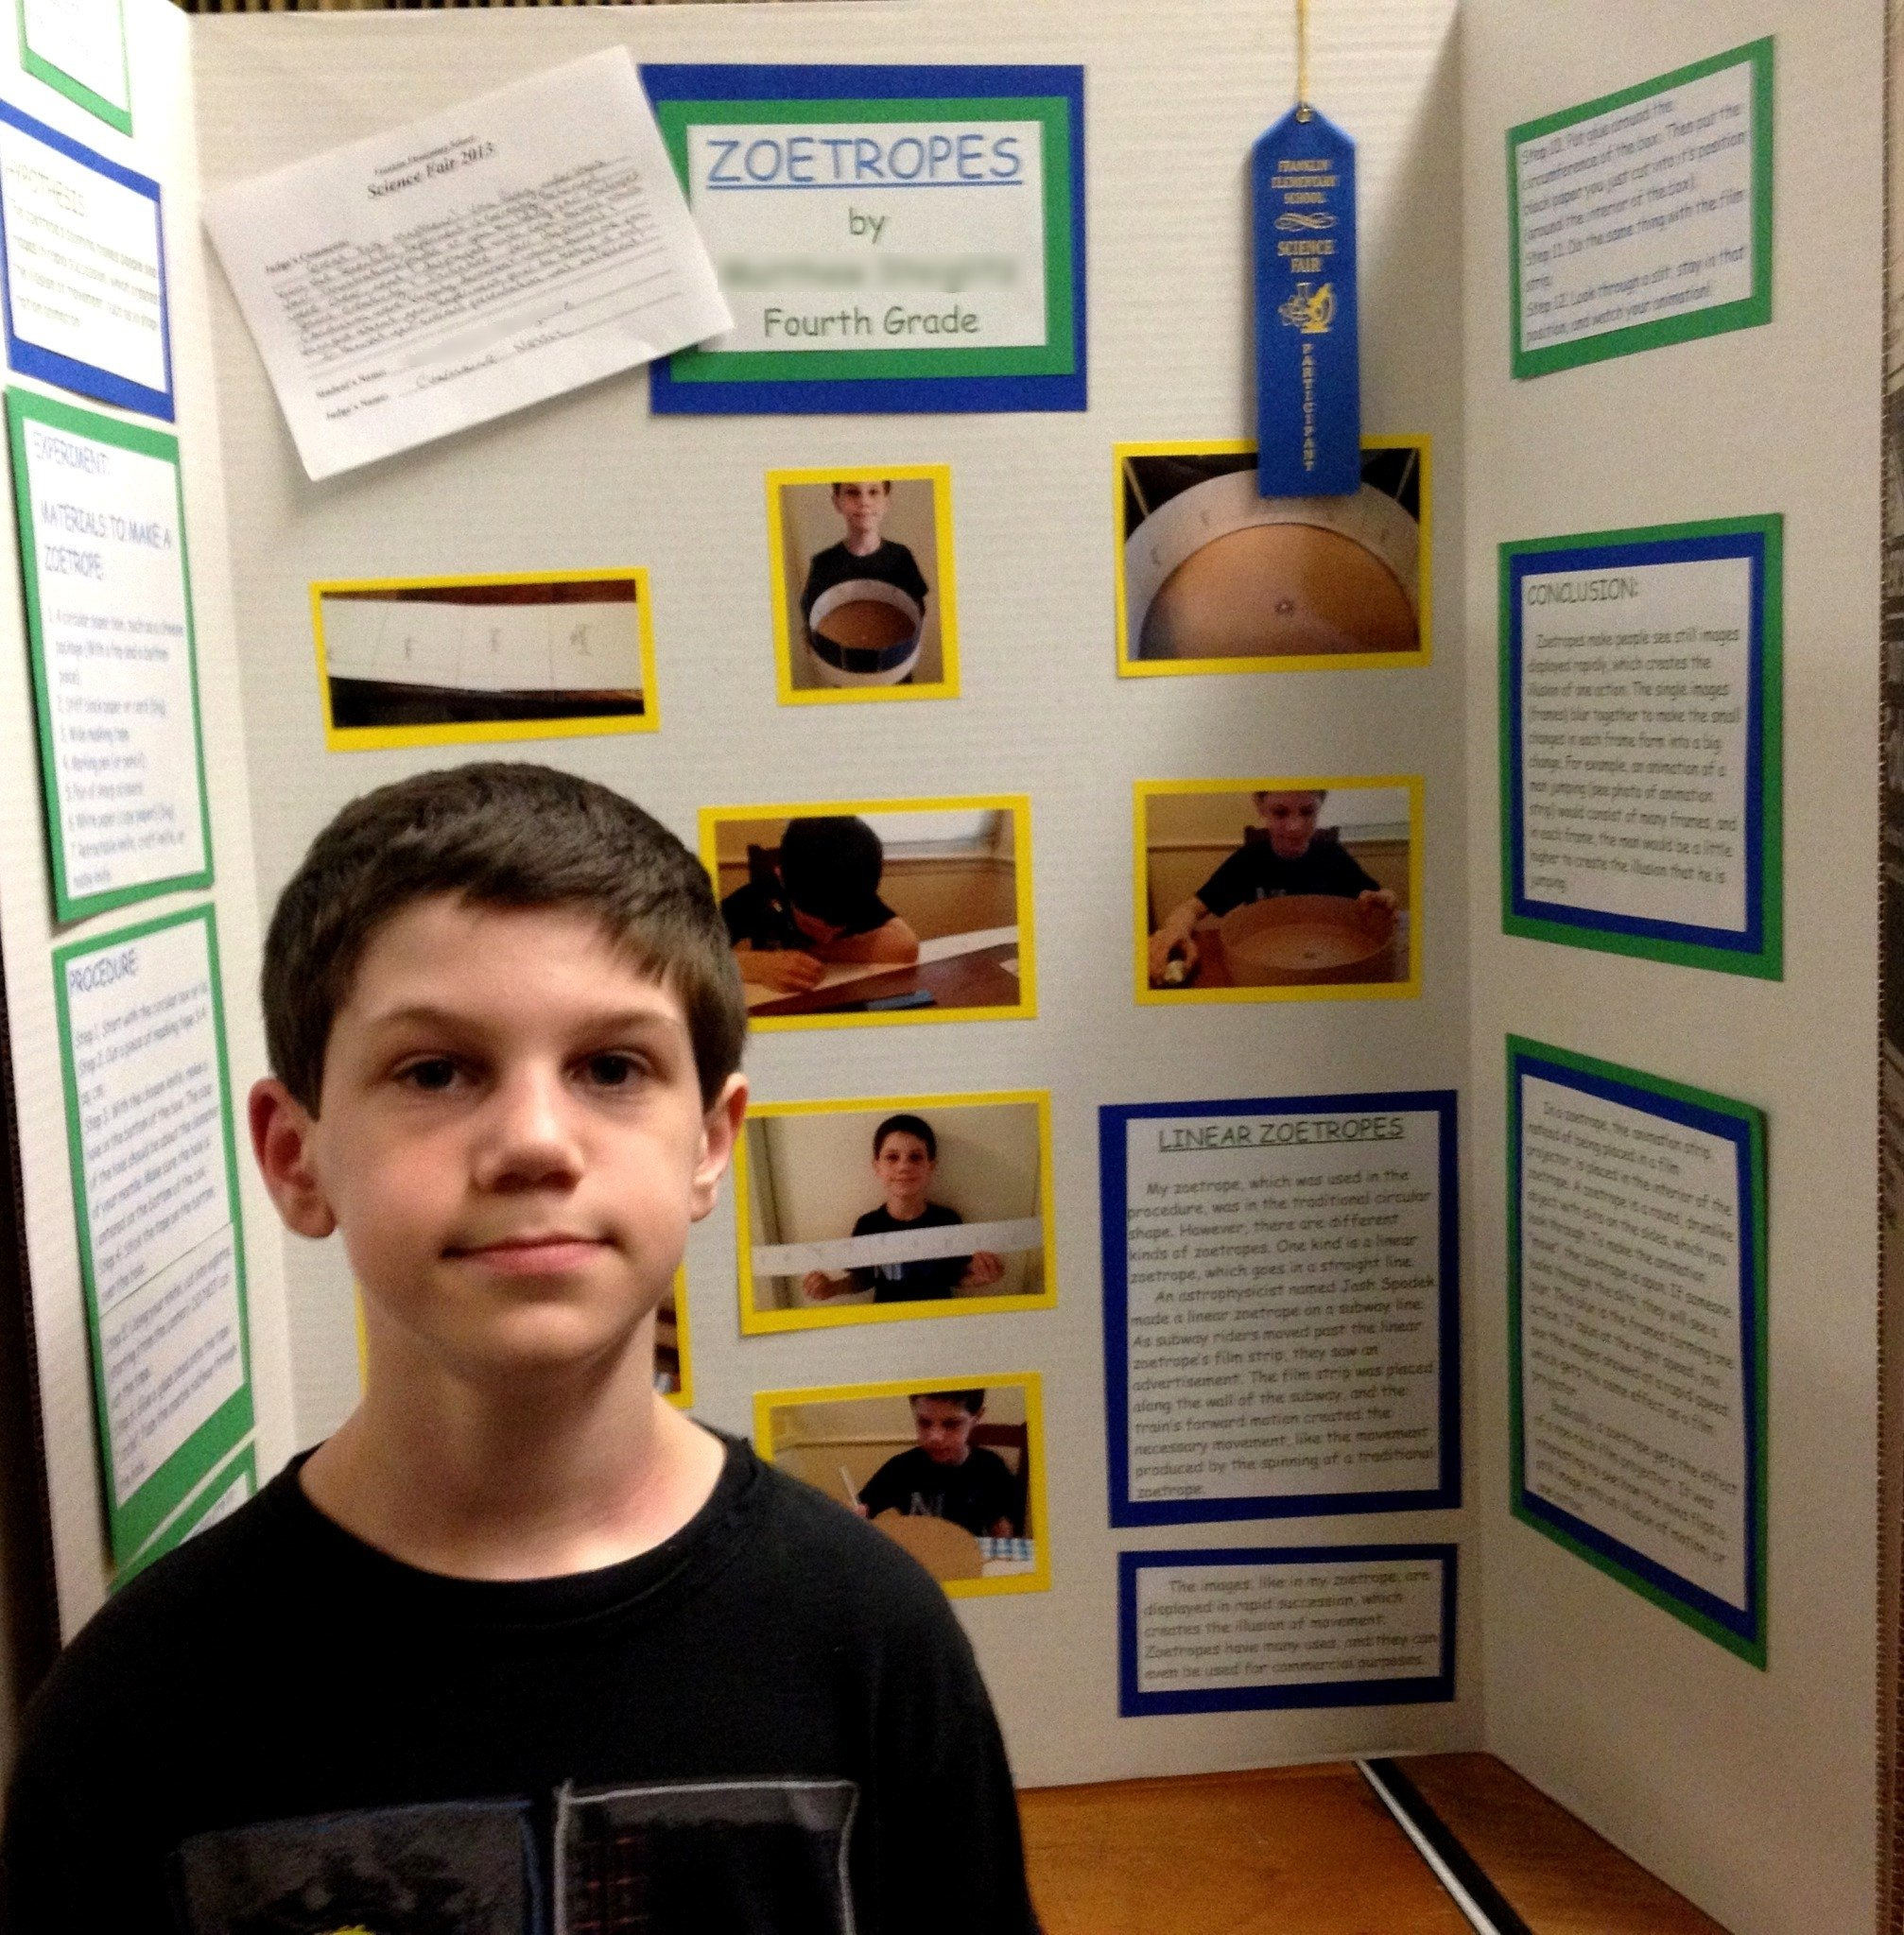 10 Best Science Project Ideas 4Th Grade zoetropes in a fourth grade science fair joshua spodek 7